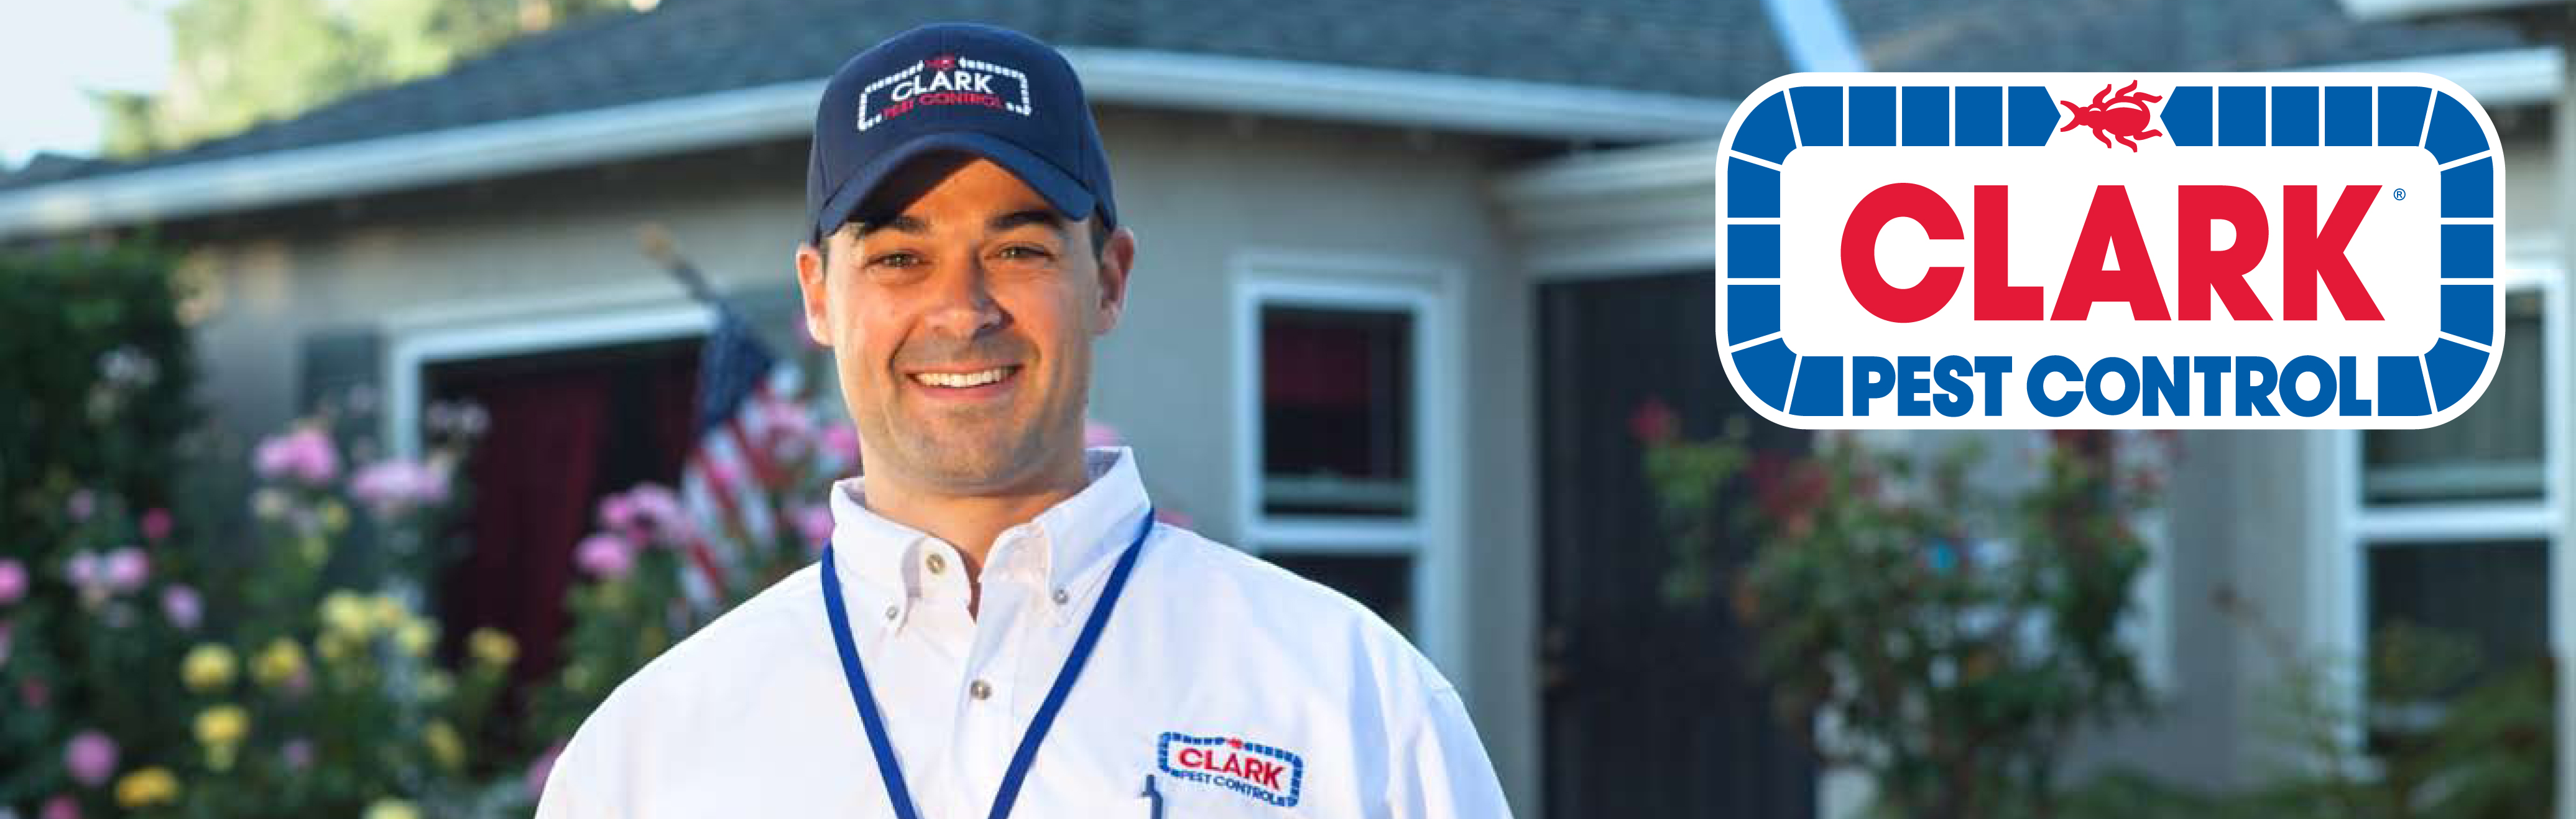 Clark Pest Control reviews | Home & Garden at 1220 W. Betteravia Rd. - Santa Maria CA